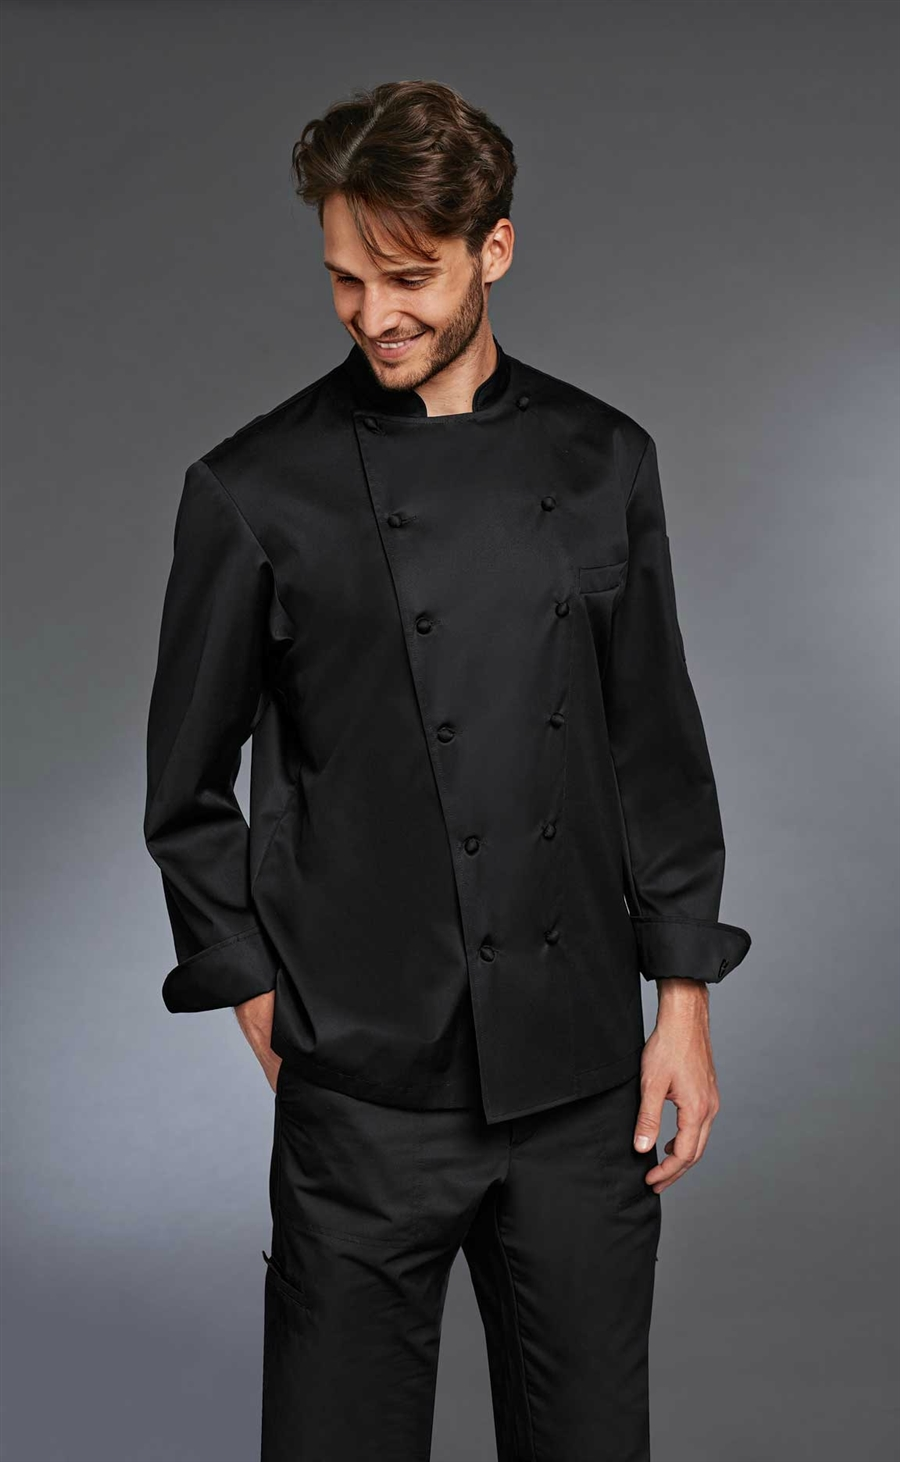 'The Grand Chef' ALLURE Chef Jacket black with Pen Pocket and Breast Pocket in 100% Cotton